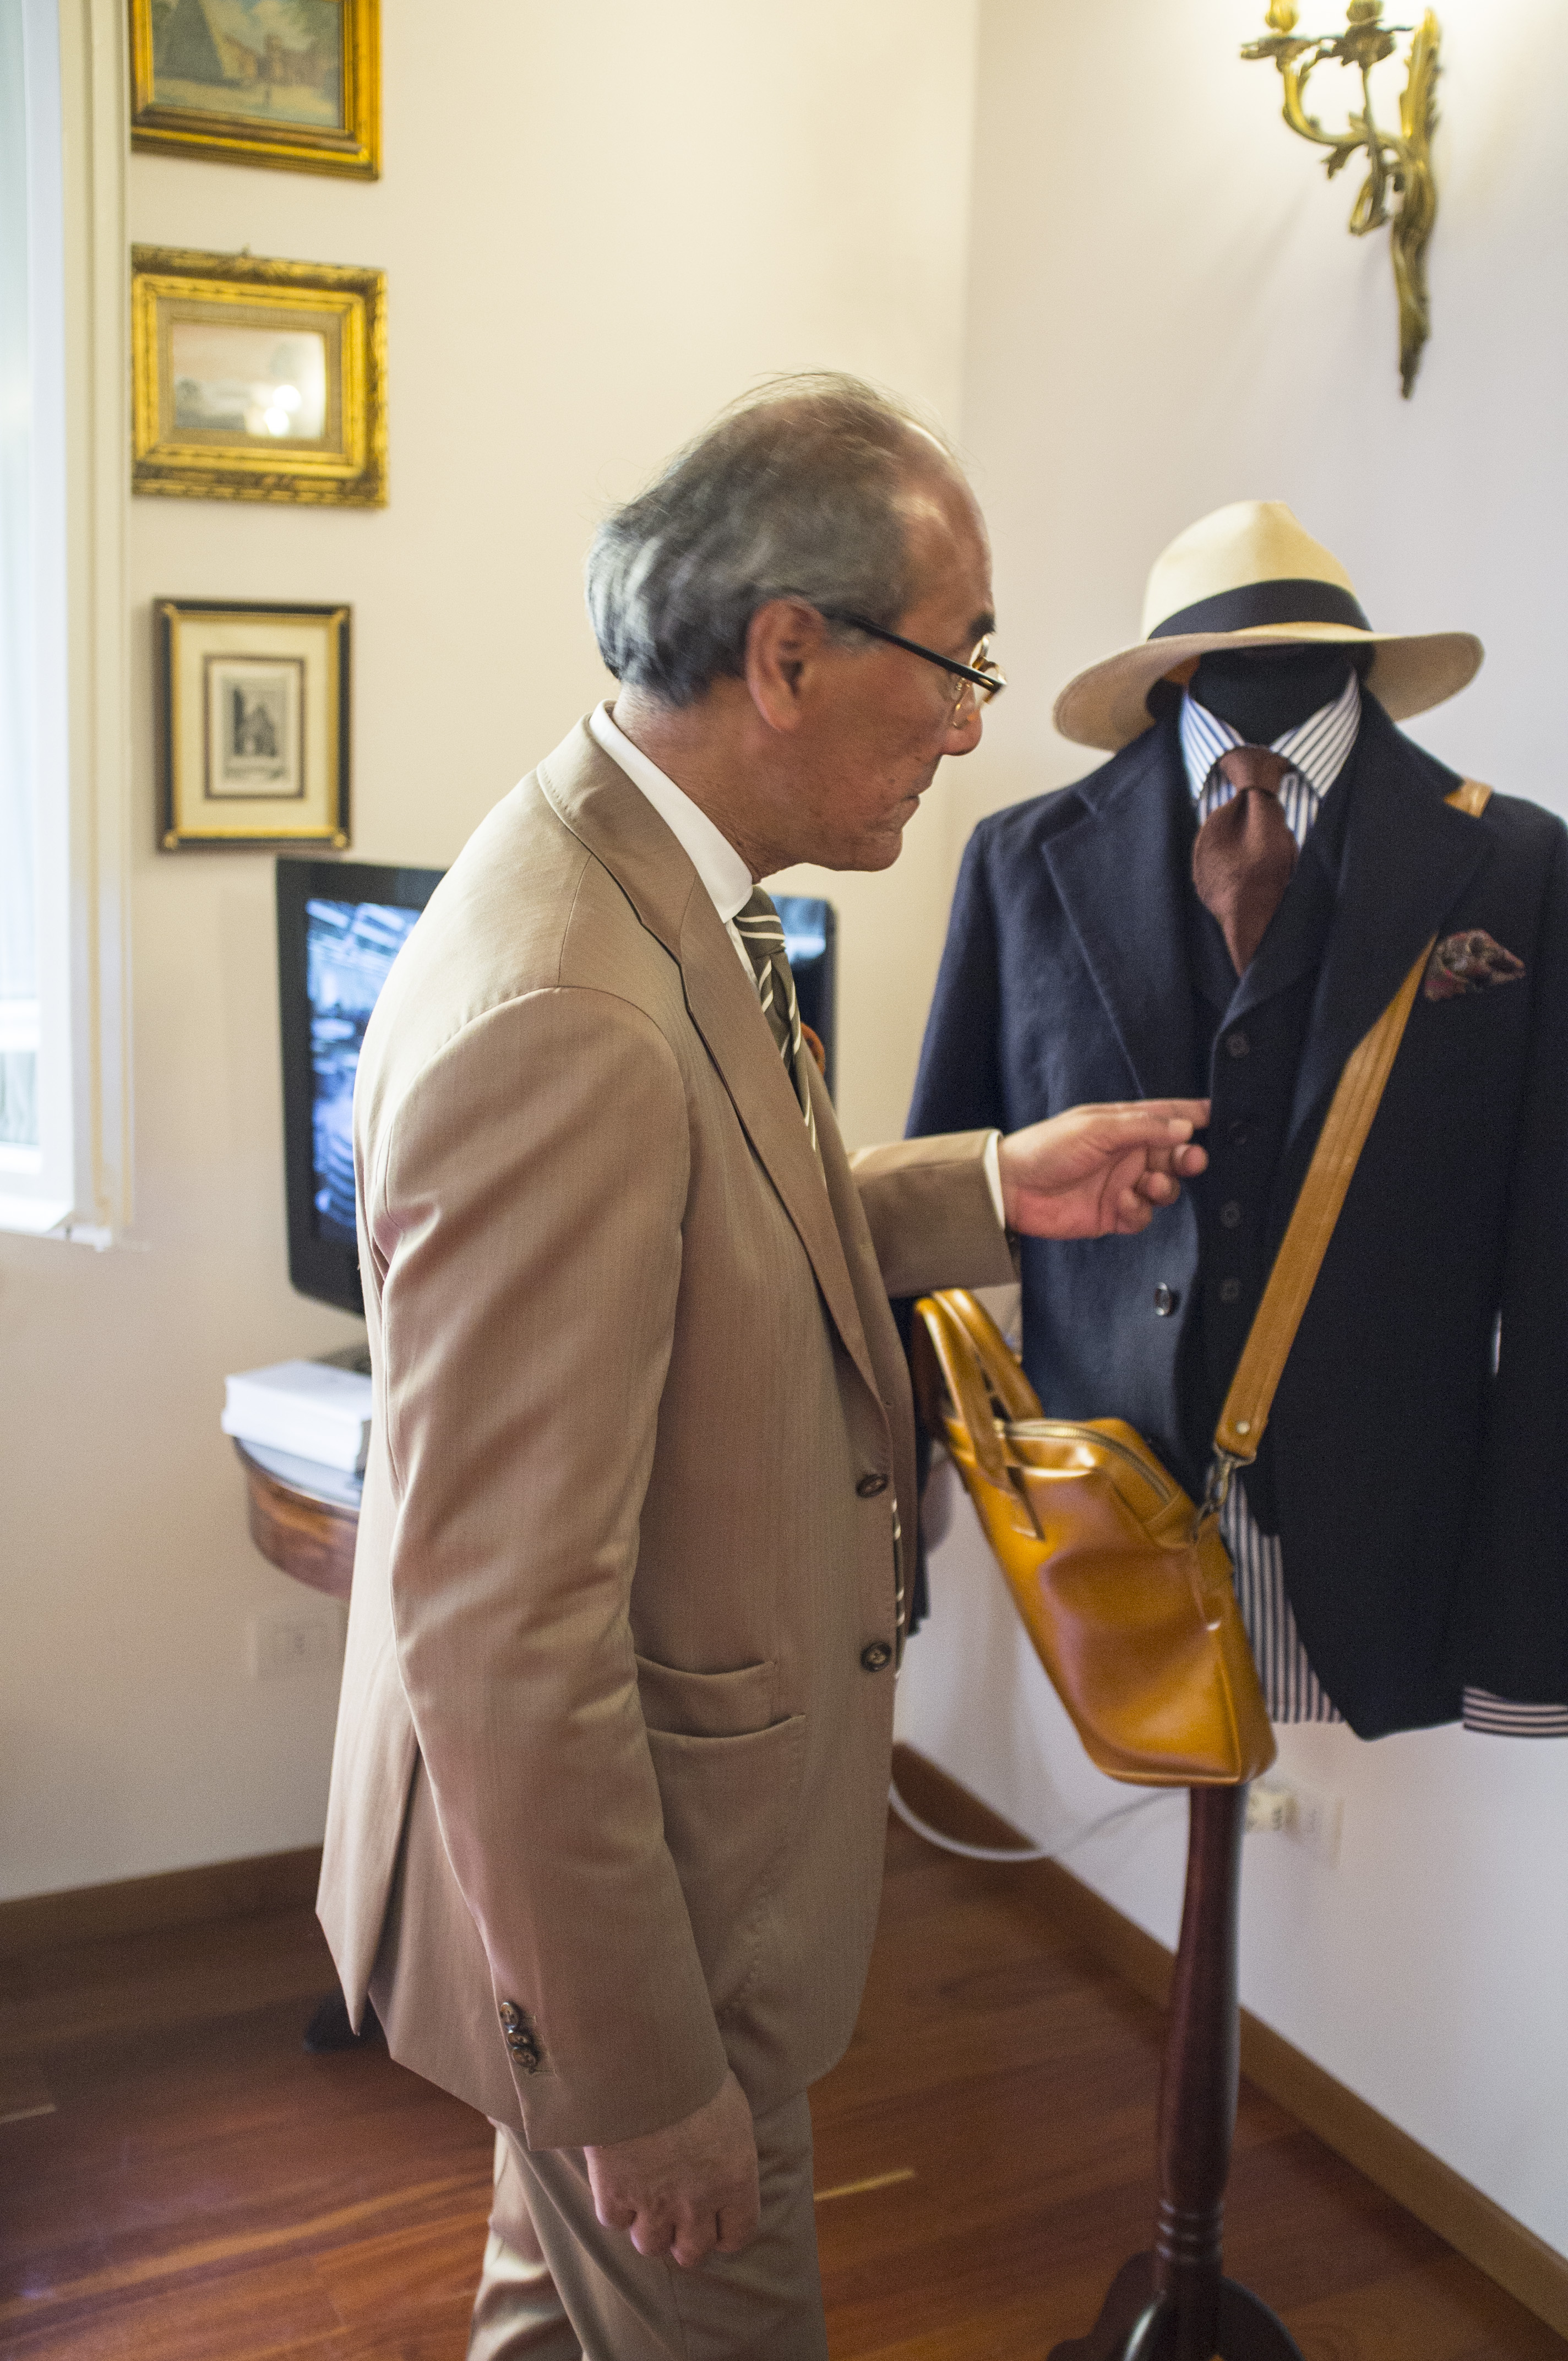 dieworkwear's photos in Pitti Uomo 90 - Day 4